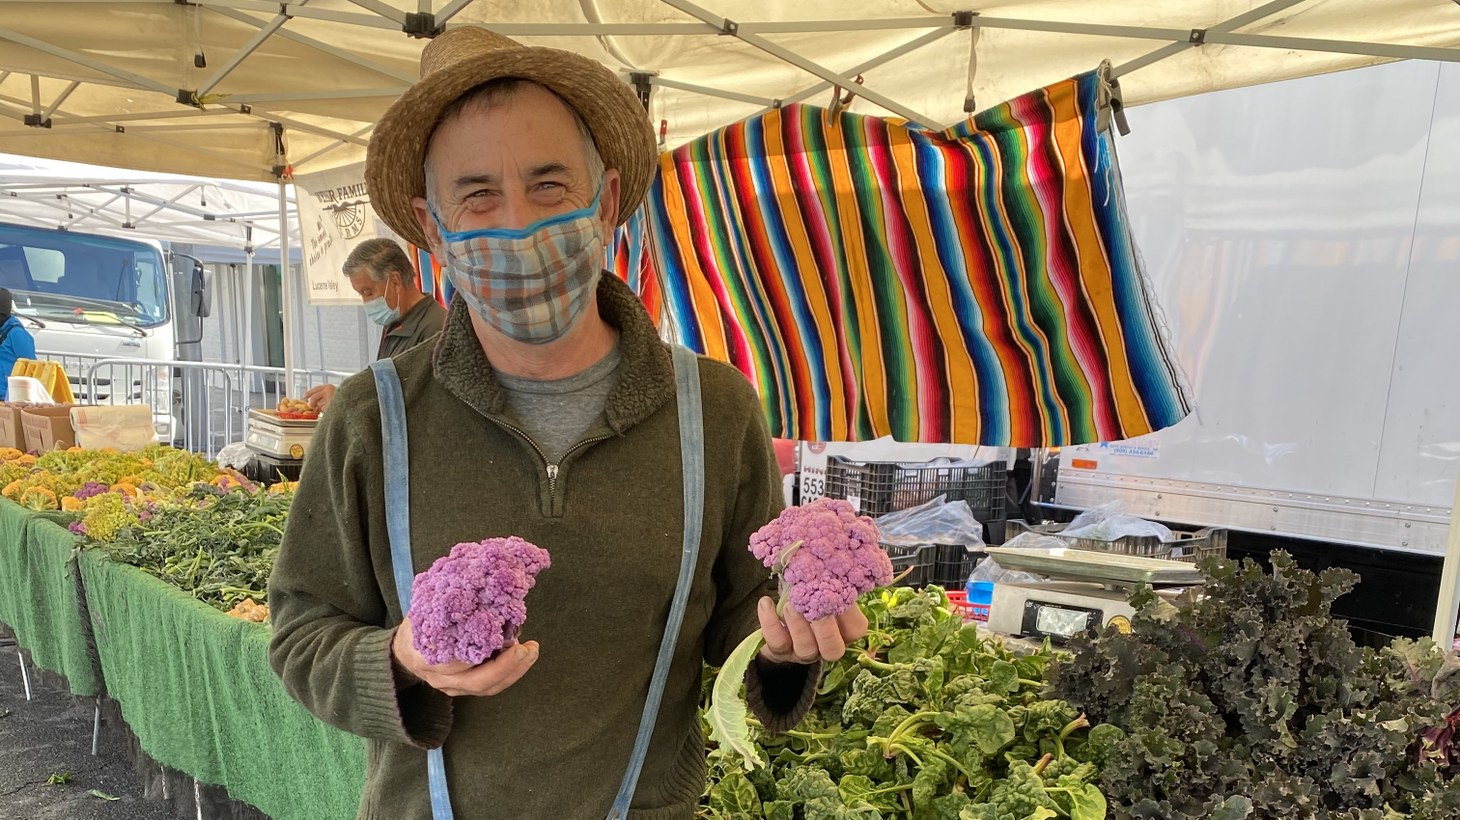 Alex Weiser and his family have been growing crops for 40 years. He recognizes that beyond the produce, people come to the farmer's market to socialize.